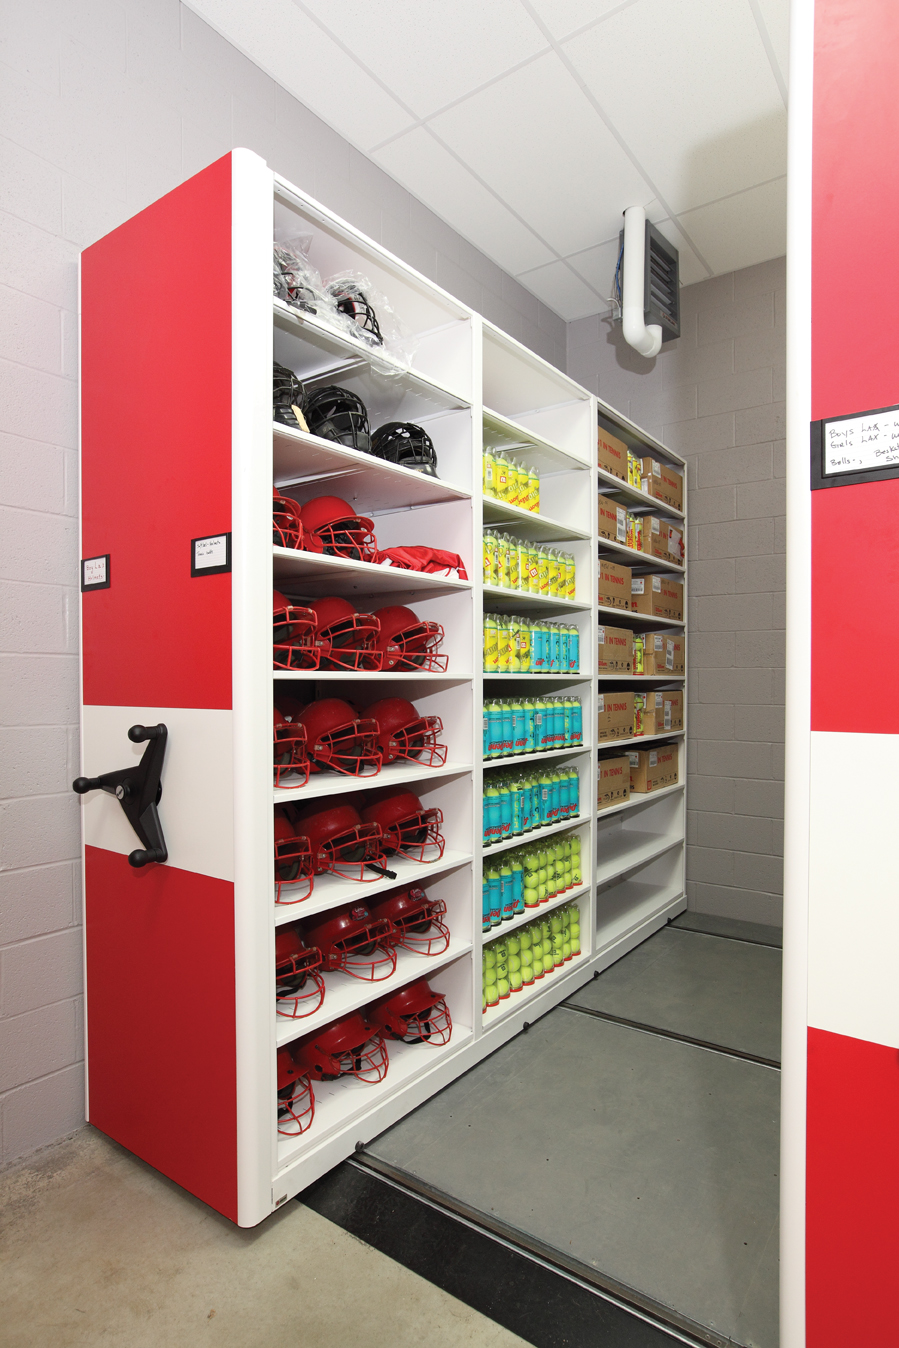 Mobiletrak3 Organizes Helmets Tennis And More Storage System Helps To Organize Athletic Equipment For Souderton High School